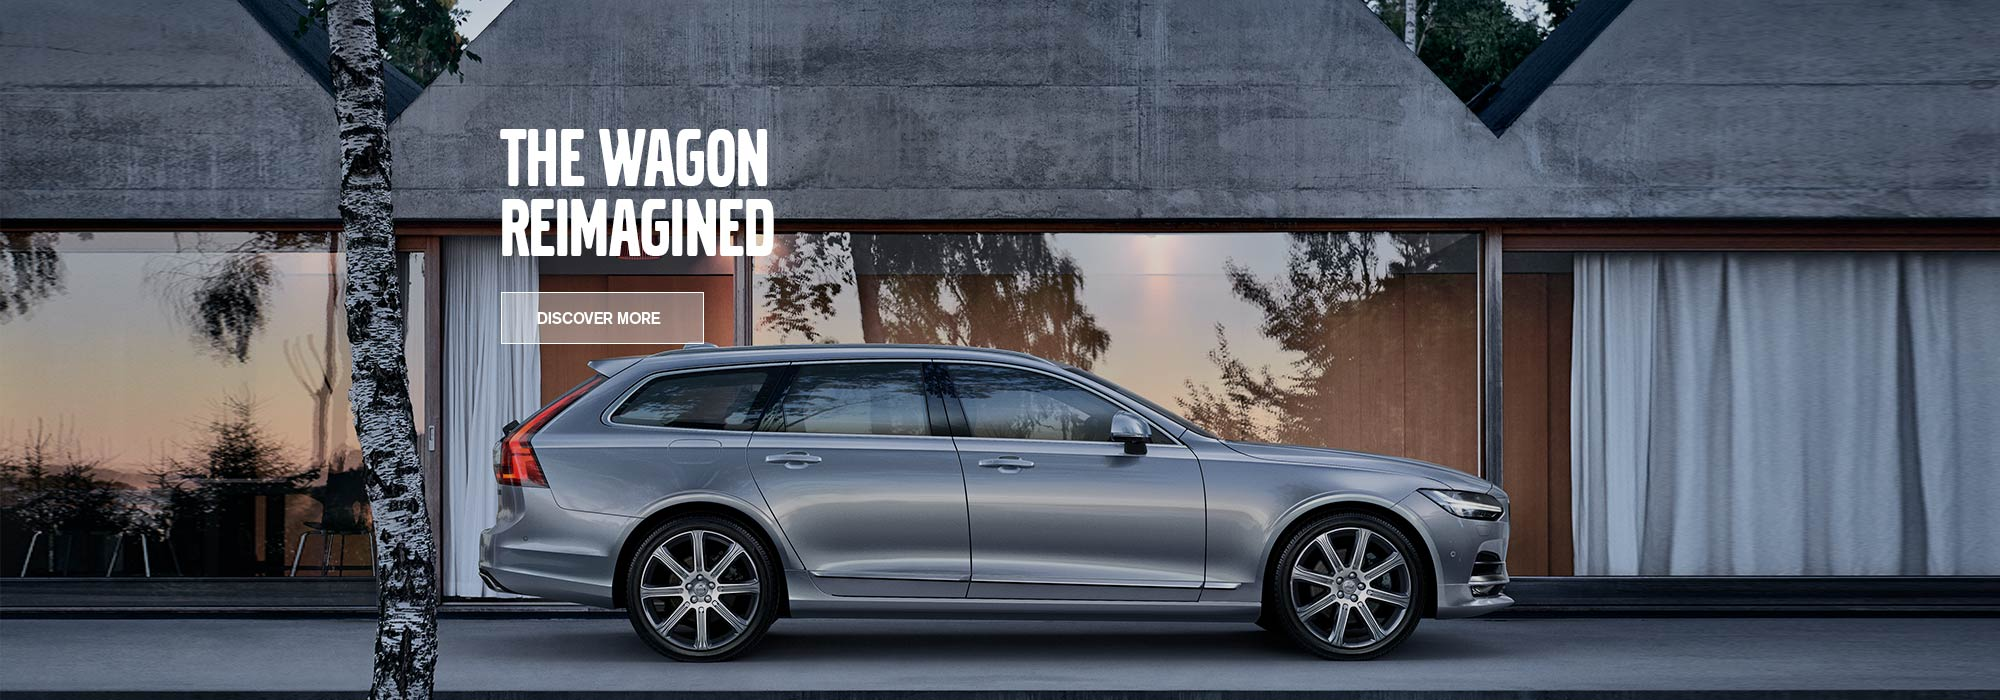 V90: The wagon reimagined